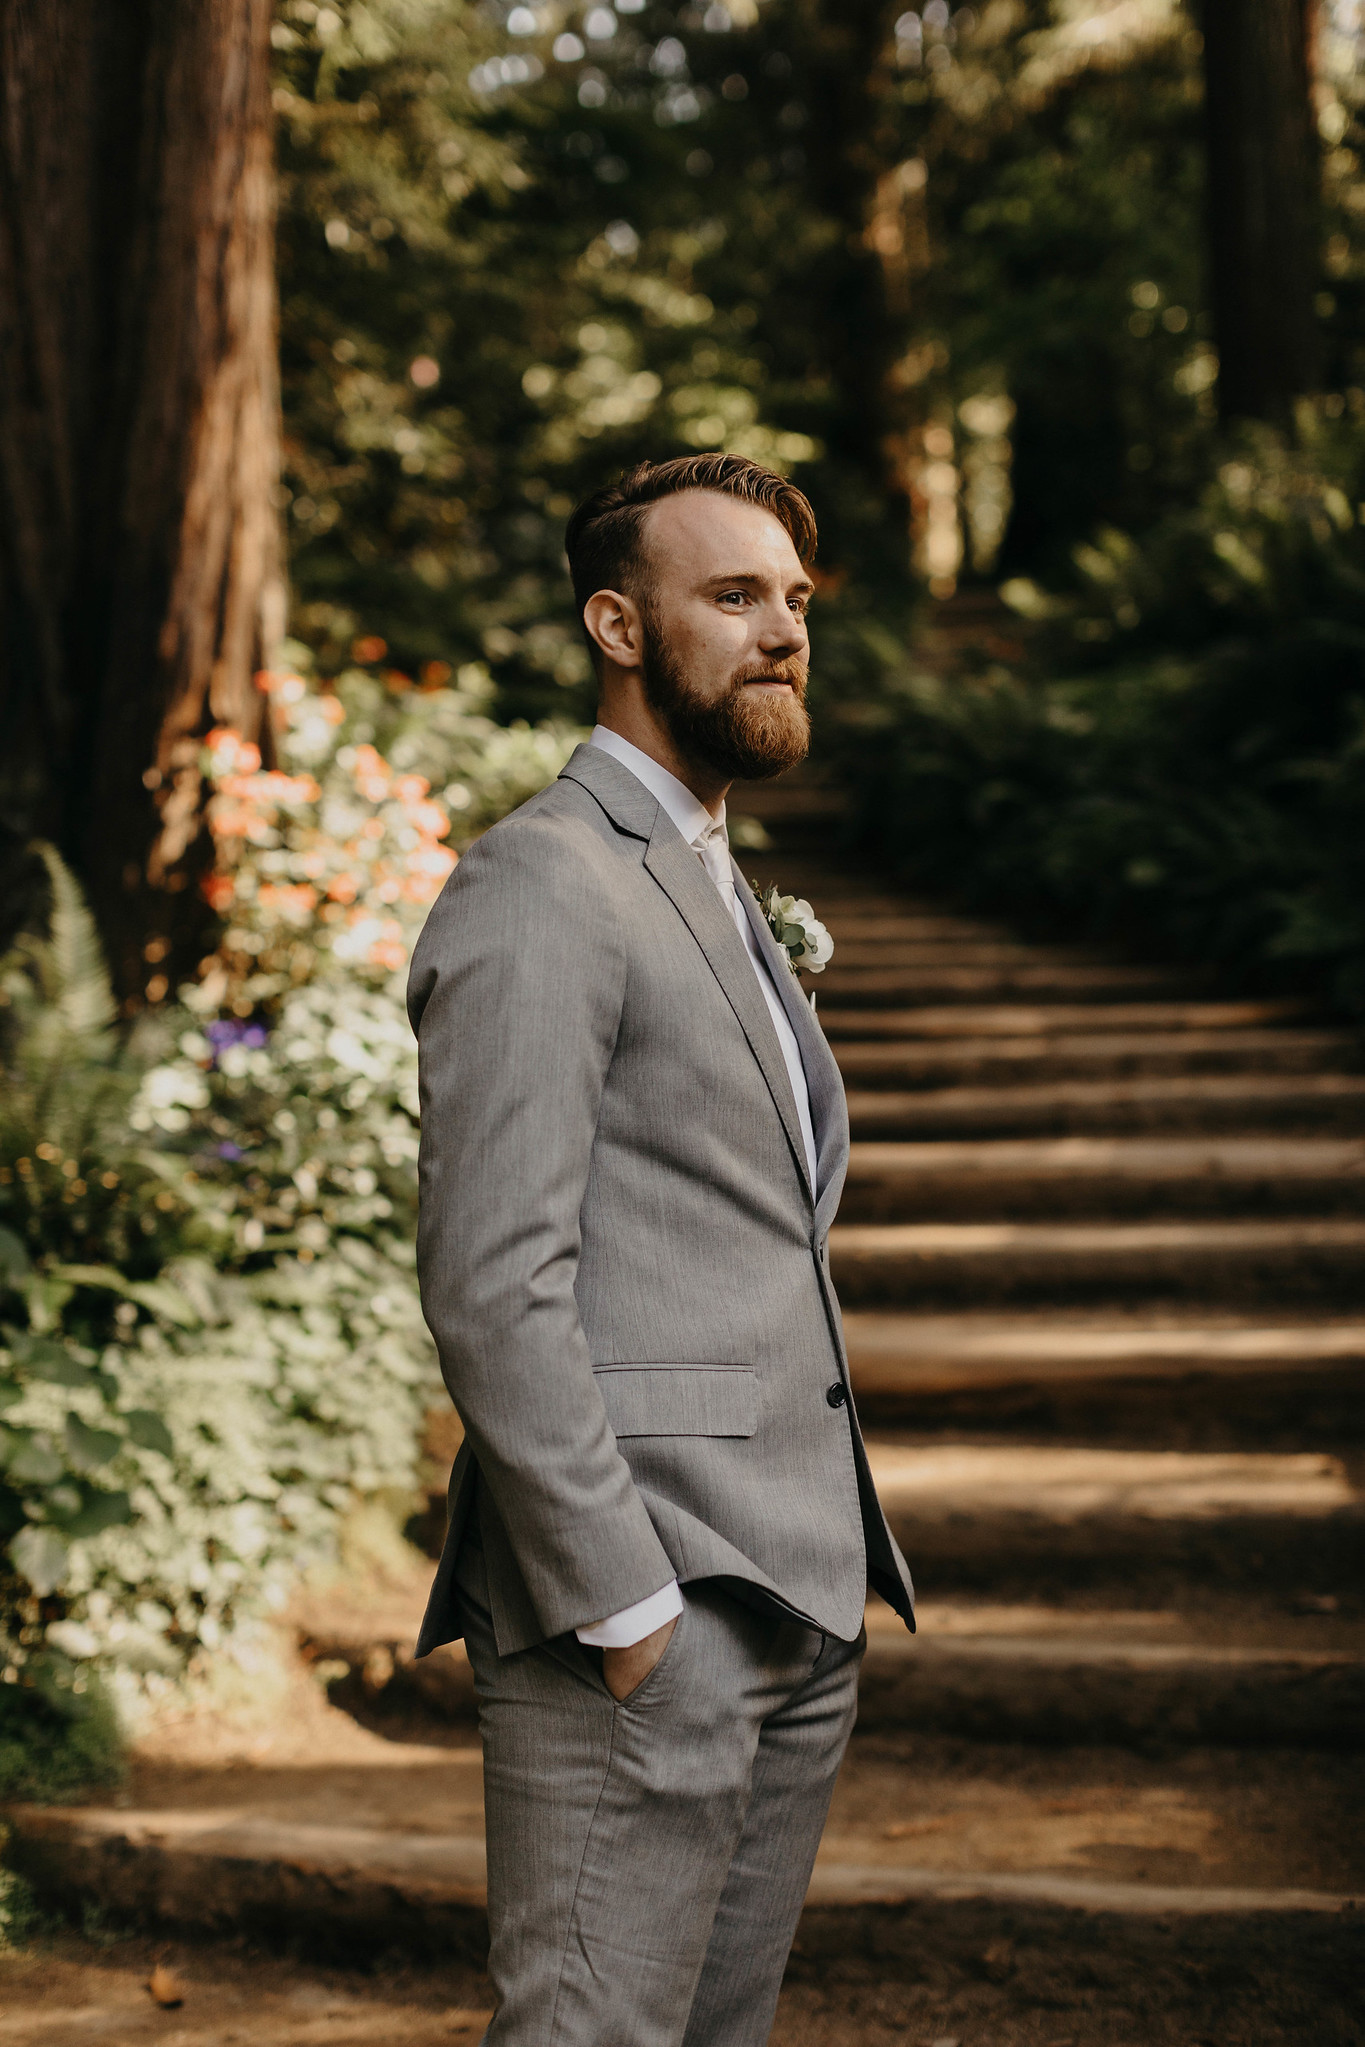 Hi. I'm Brent. - Developer at Pinterest. Photographer, traveler, rock climber, musician, and much more.This site is a showcase of some of my thoughts and creativity. Opinions are my own; ideas are yours to share.